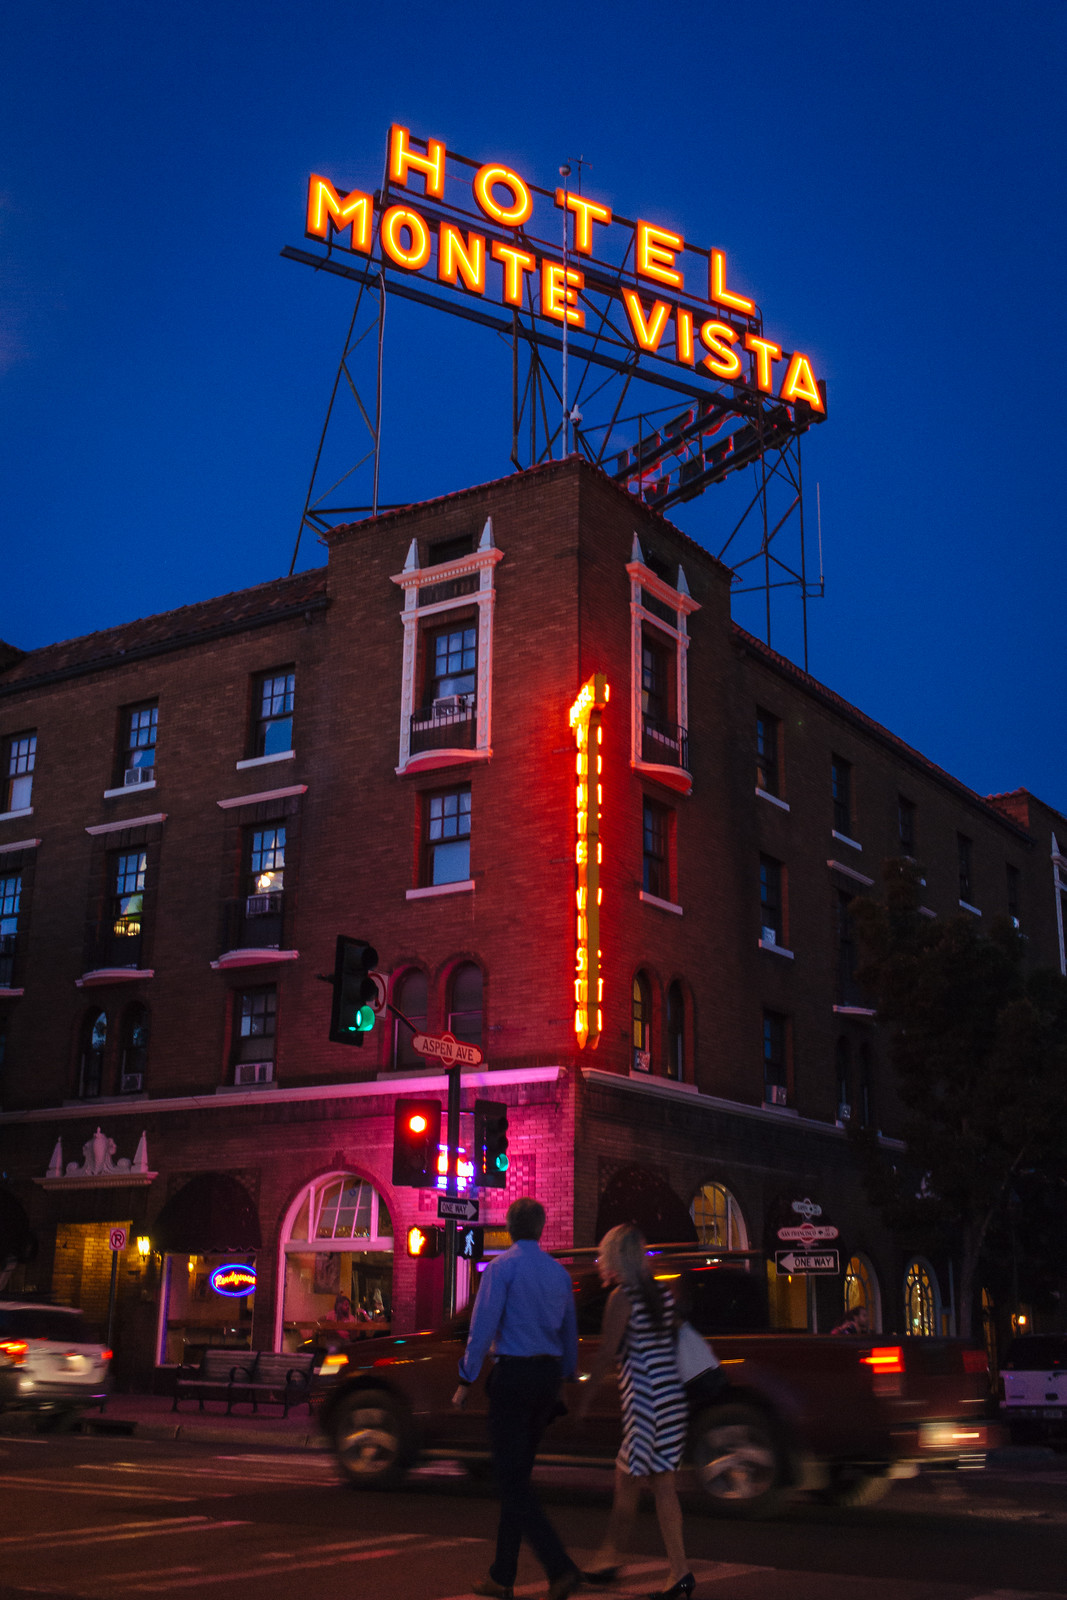 Historic hotel with a neon sign at the blue hour in Flagstaff, Arizona